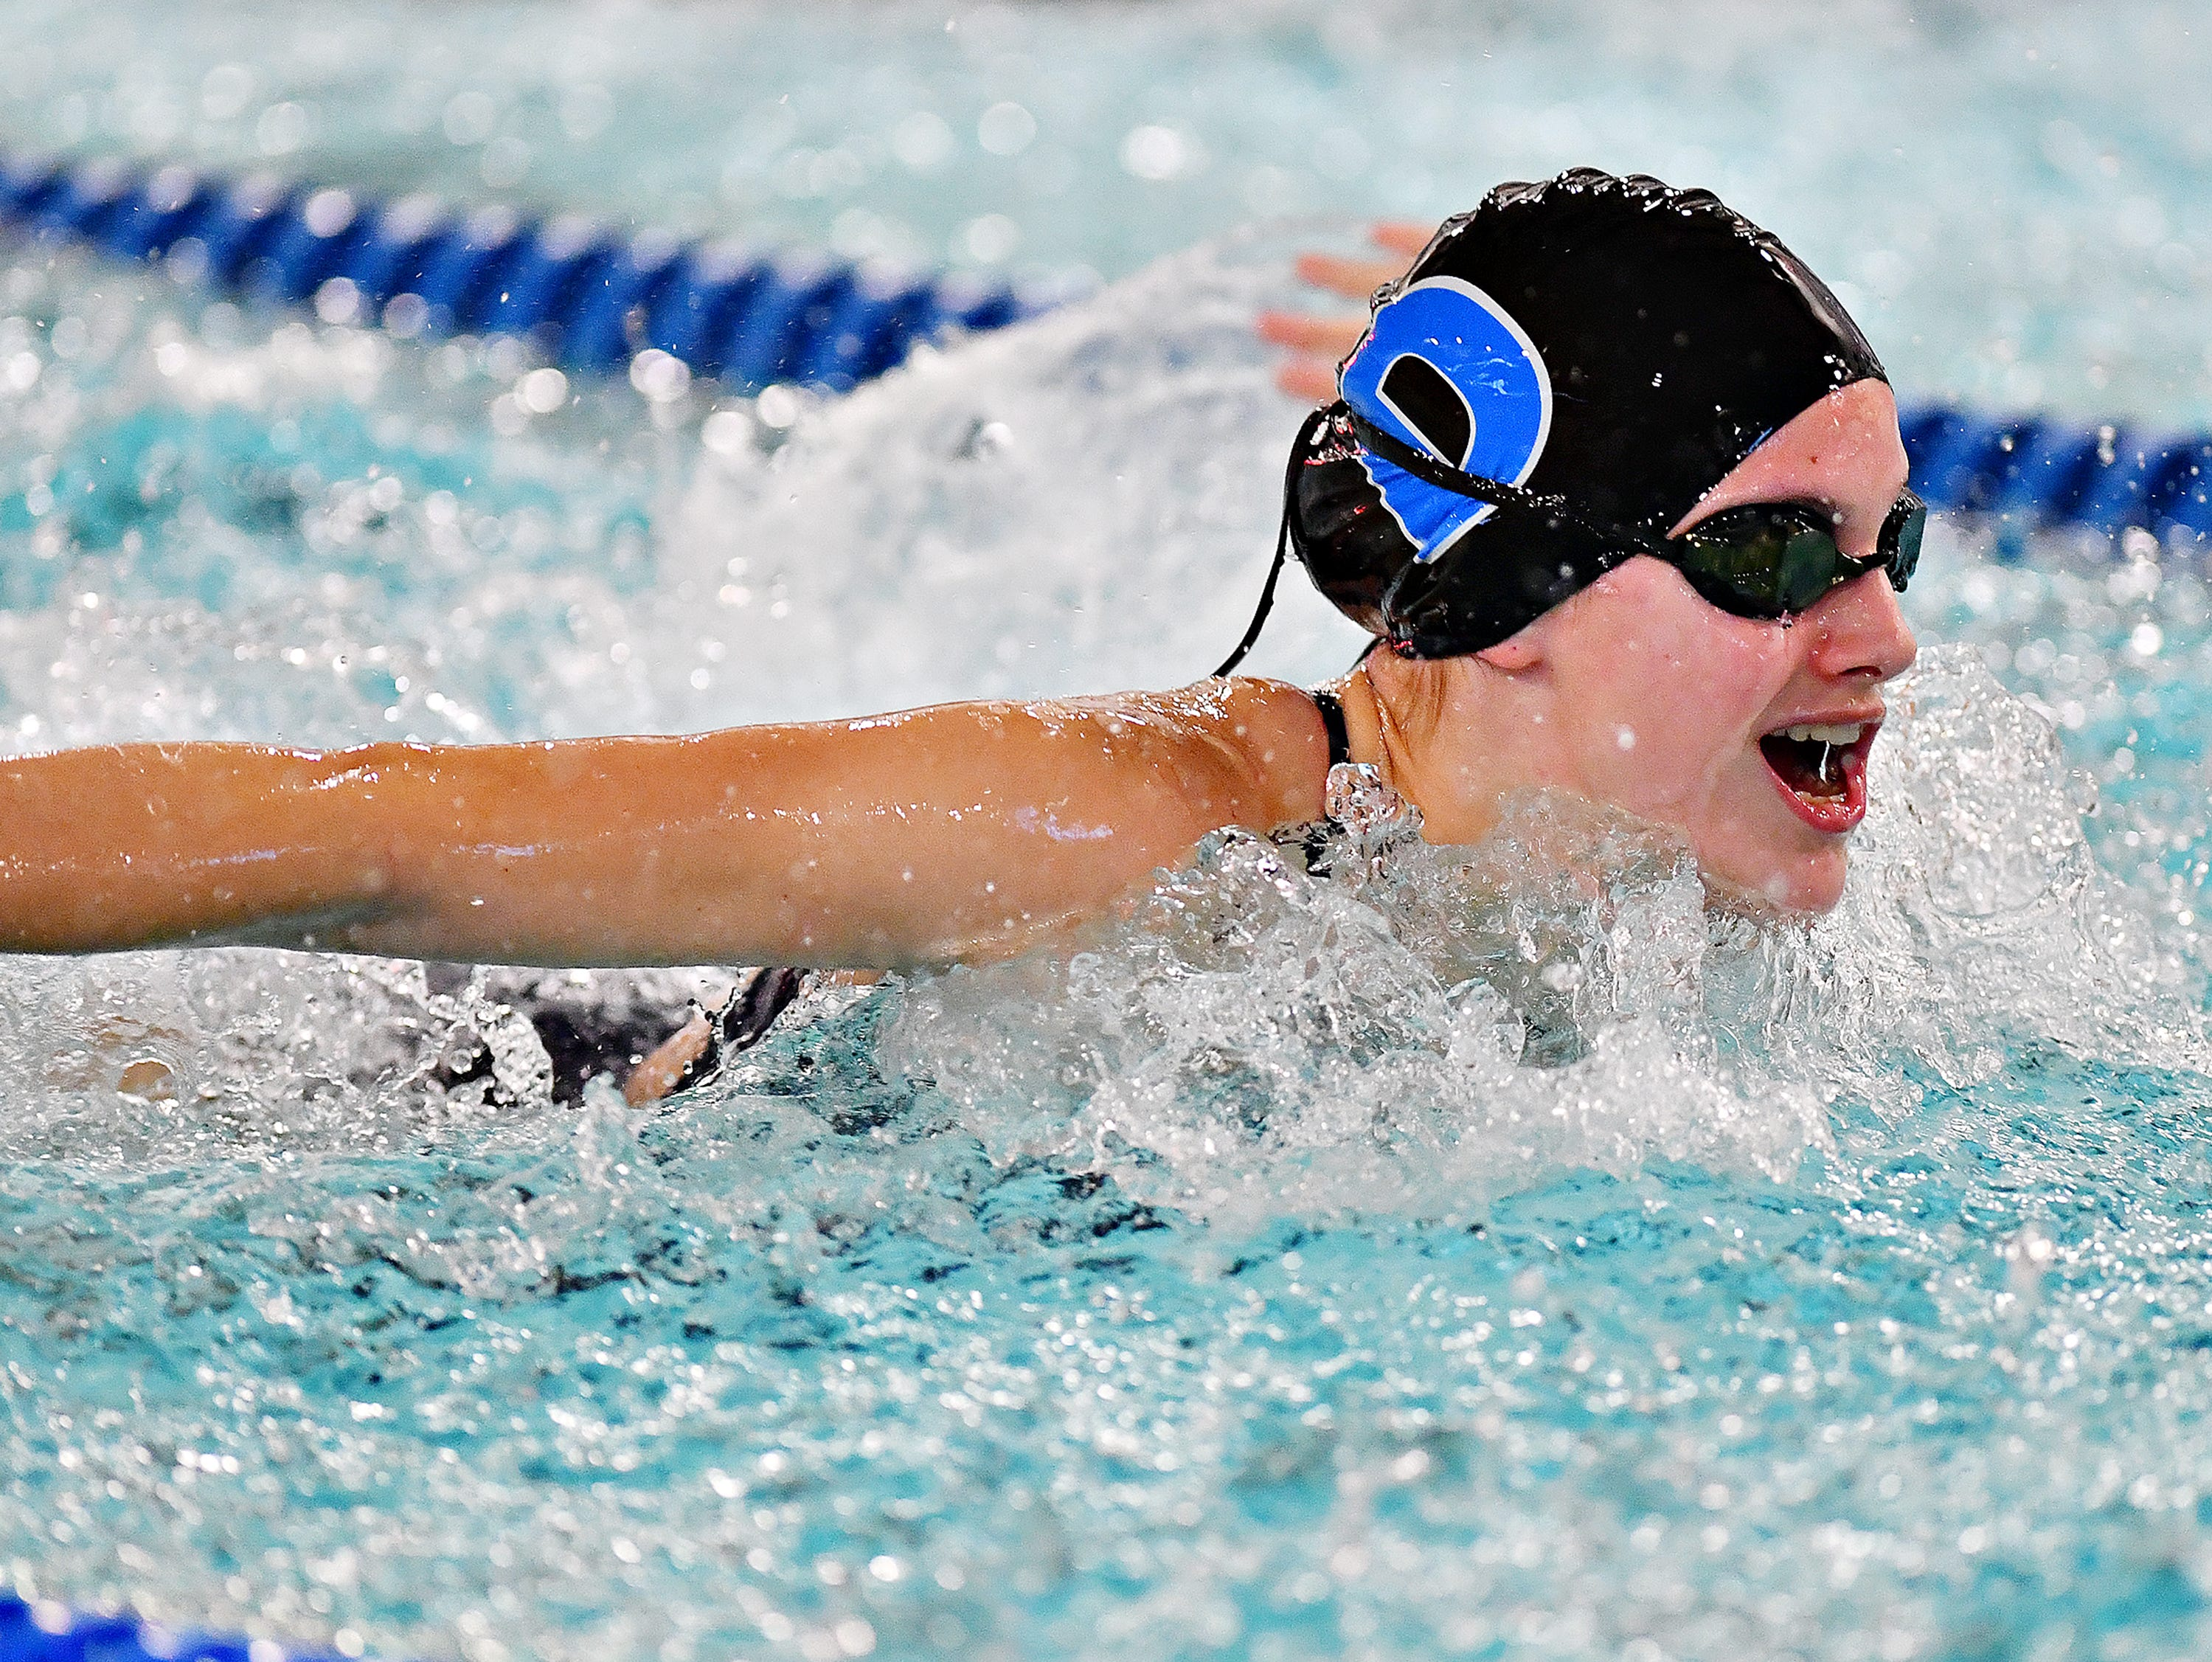 Central York vs Dallastown during the Girls 200 Yard Medley Relay event at Dallastown Area High School in York Township, Thursday, Jan. 10, 2019. Dawn J. Sagert photo